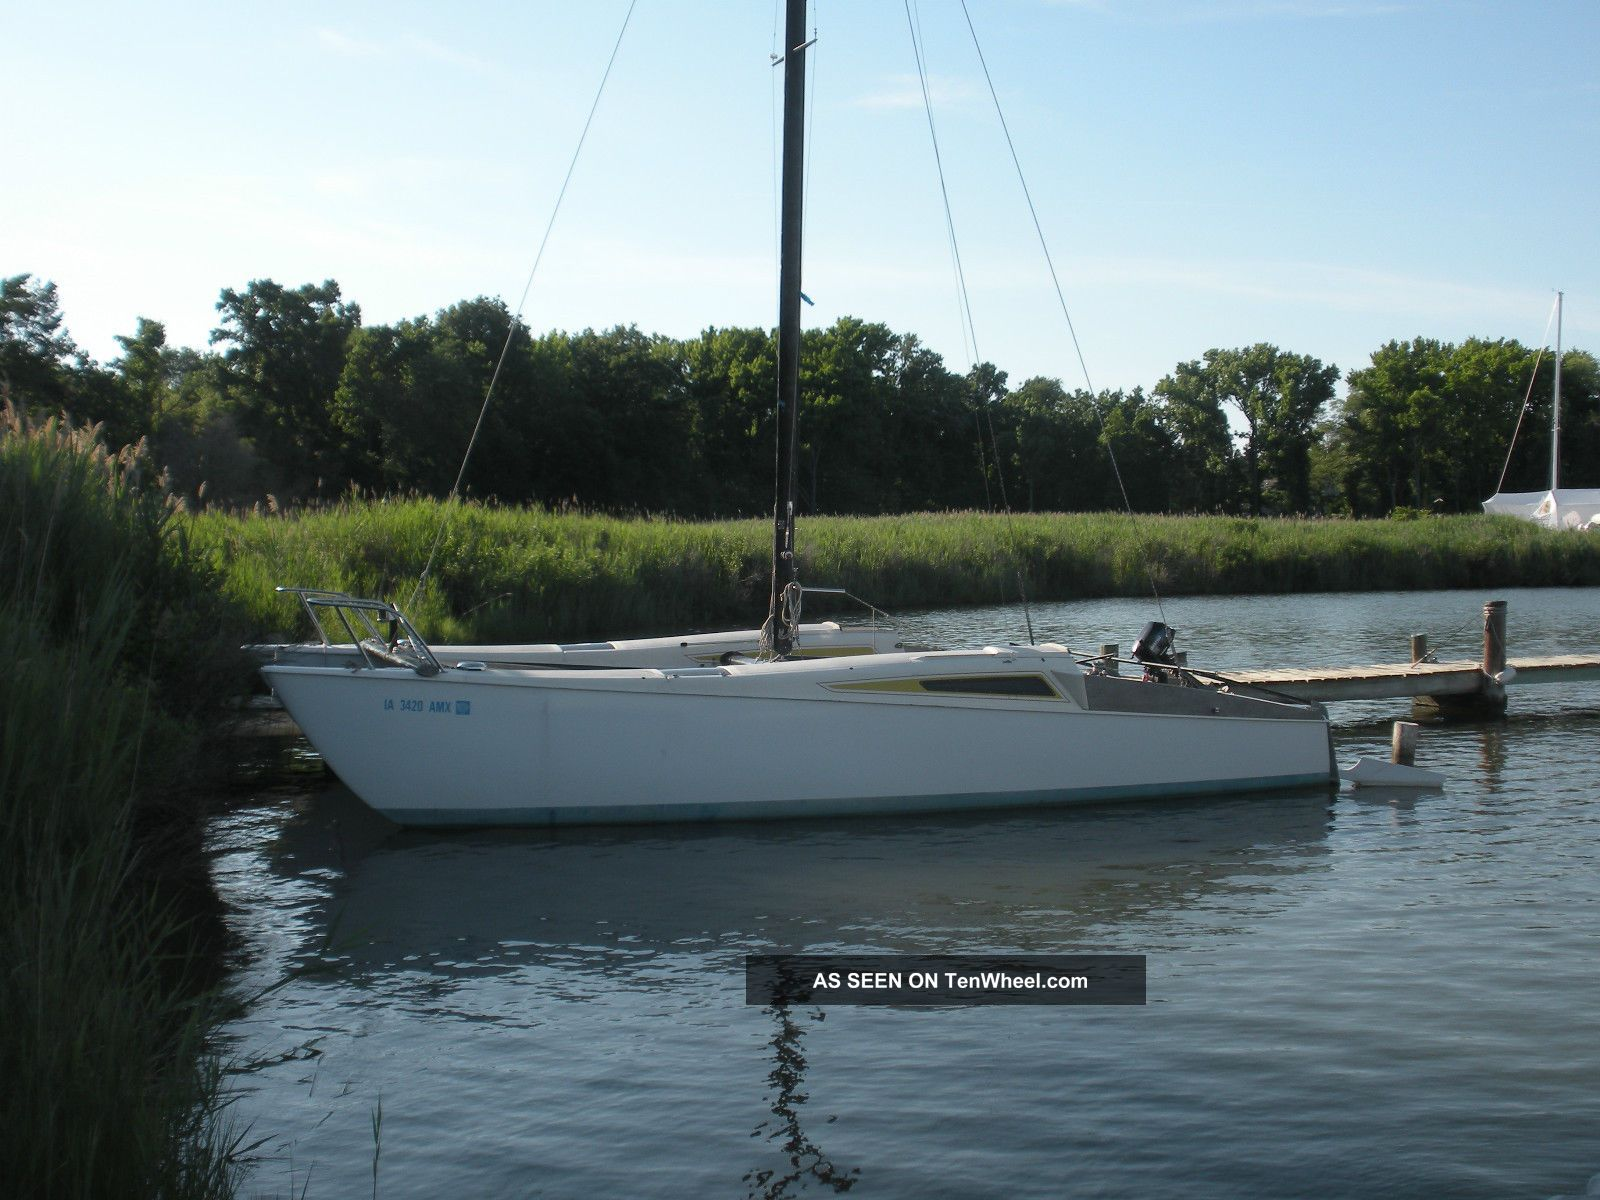 1977 Warrior 29 Catamaran Sailboats 28+ feet photo